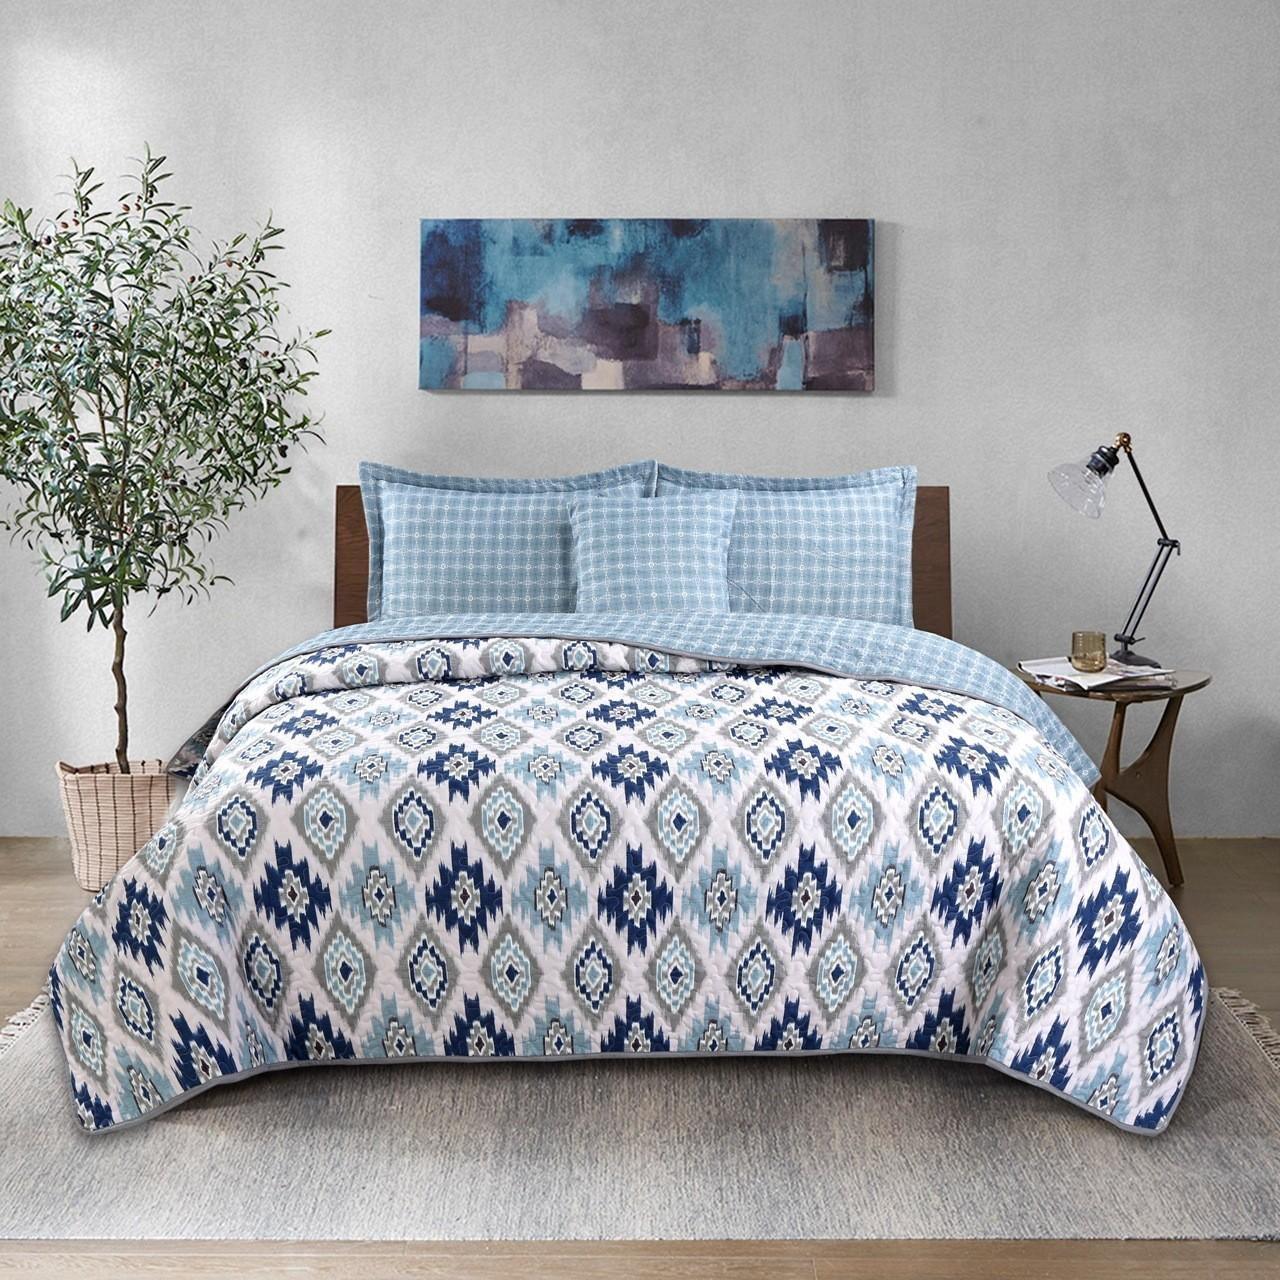 Buy cheap American style Quilt Set 3pcs air conditioner summer Quilt Cotton Quilted Bedspread summer Blanket coverlet set from wholesalers